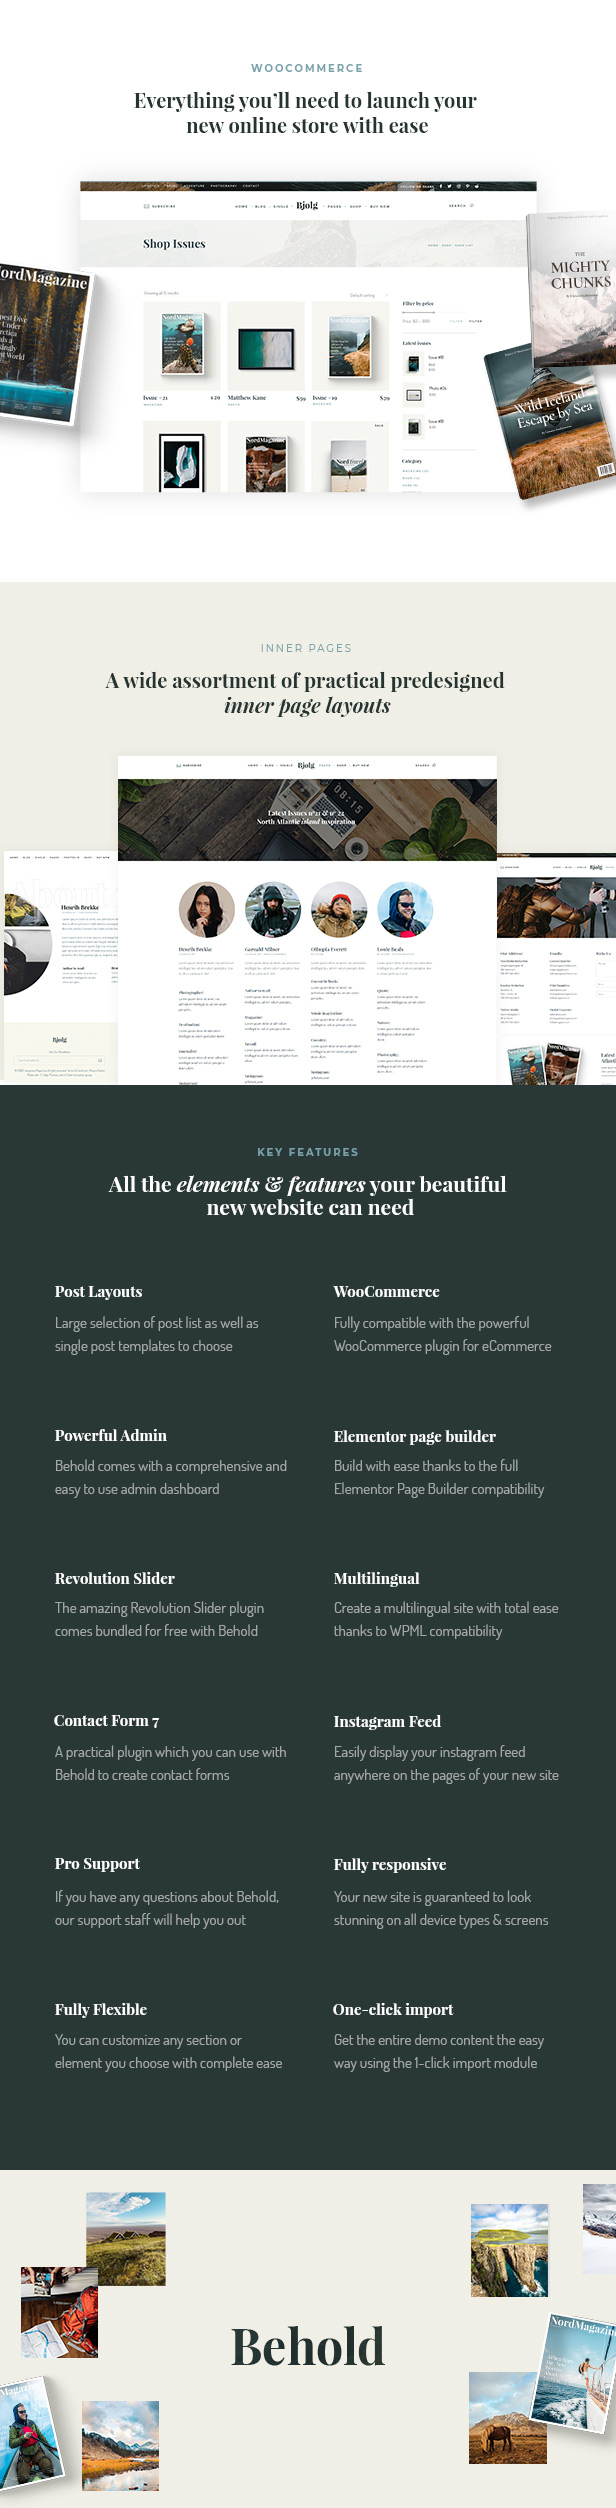 Behold - Personal Blog WordPress Theme - 7